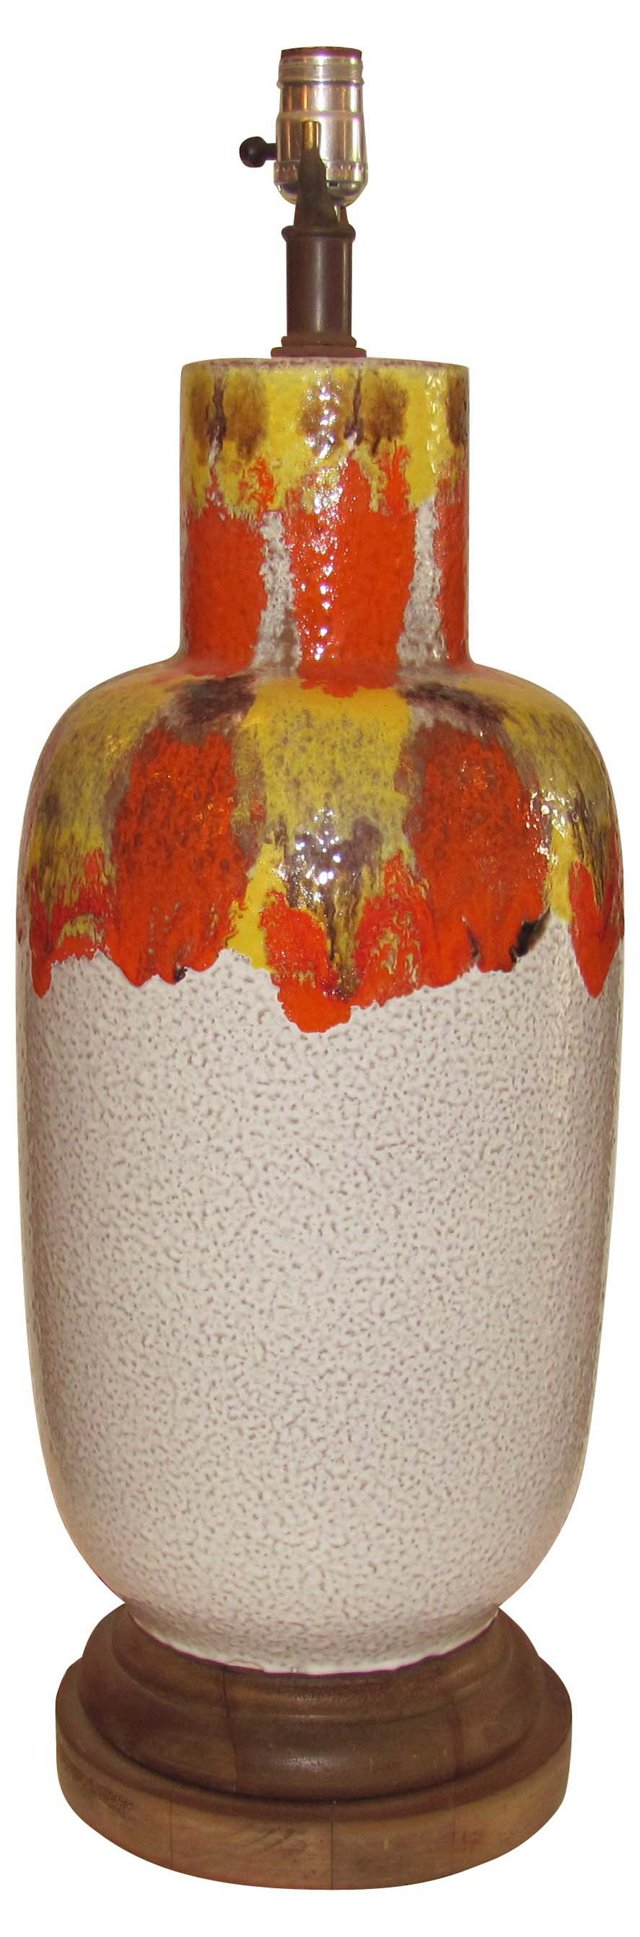 Lava Glazed Ceramic Lamp